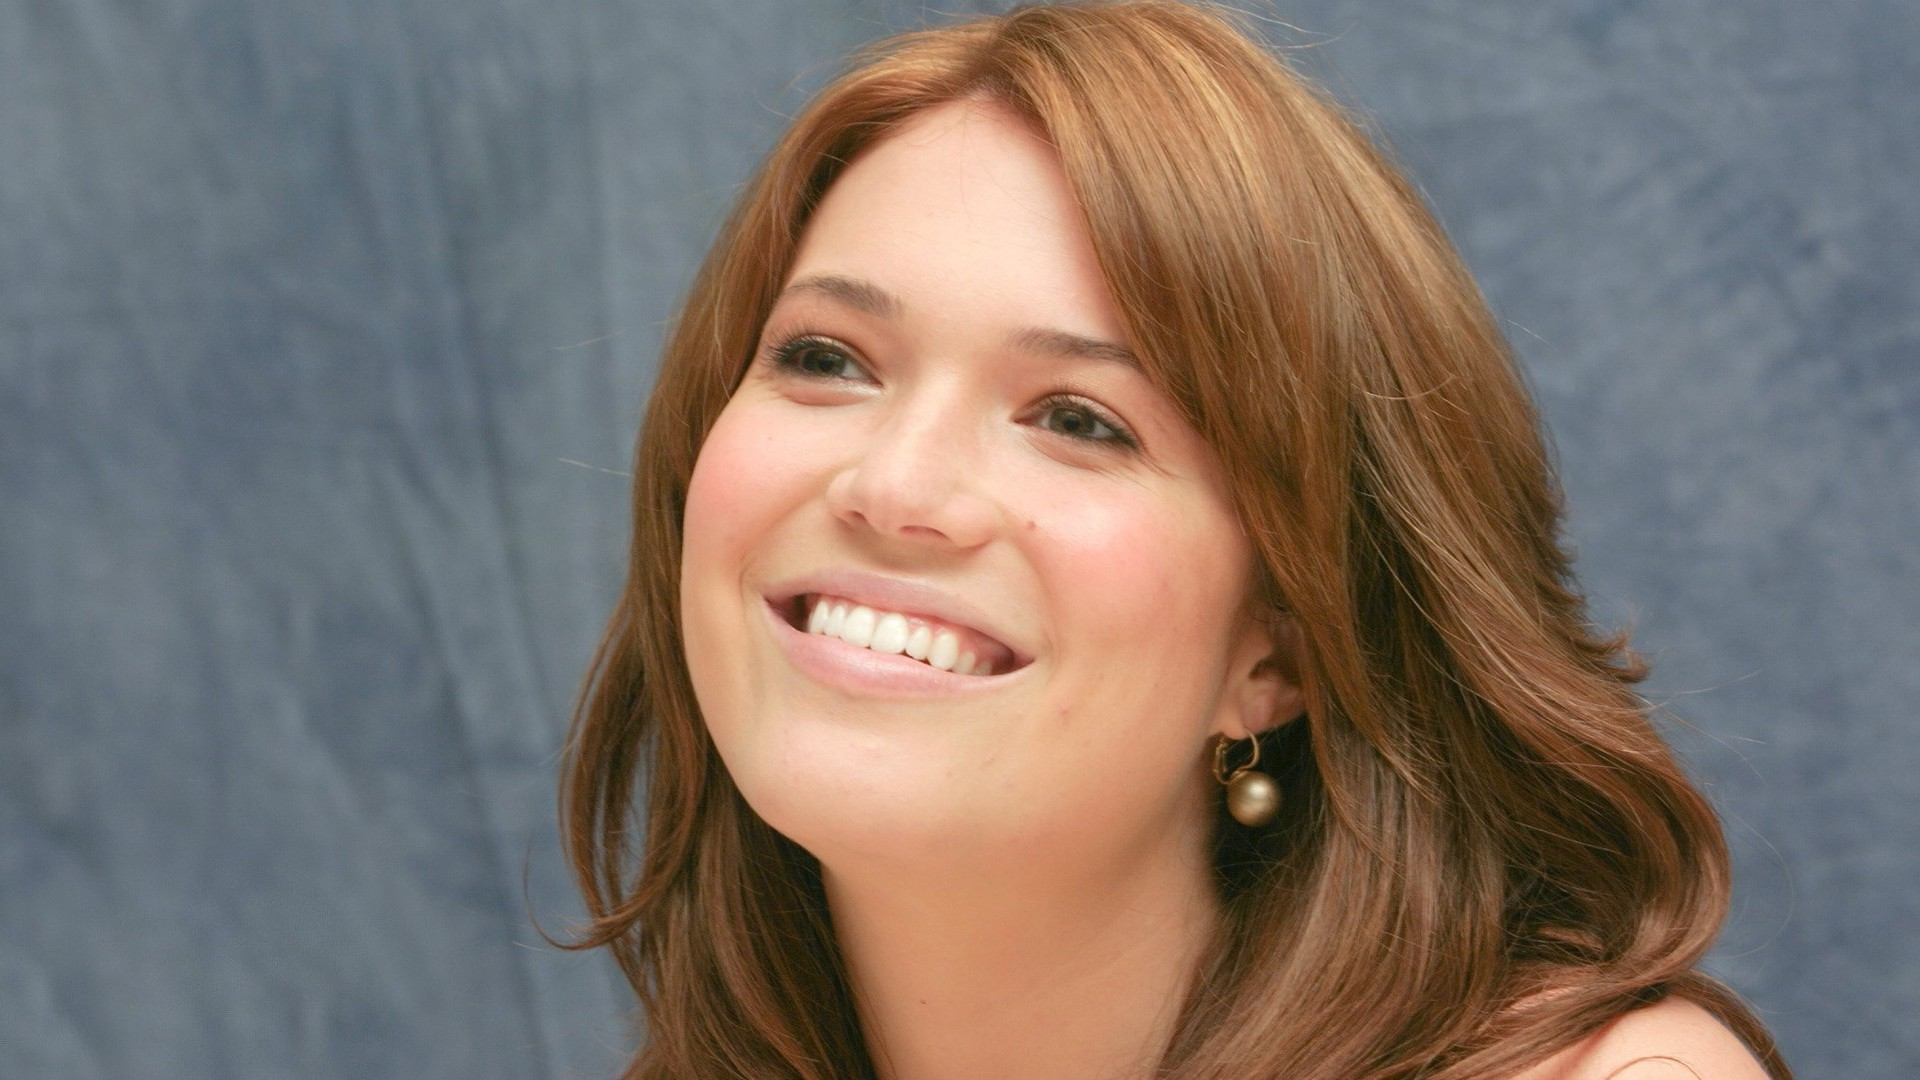 mandy moore smile wallpaper 51183 1920x1080px